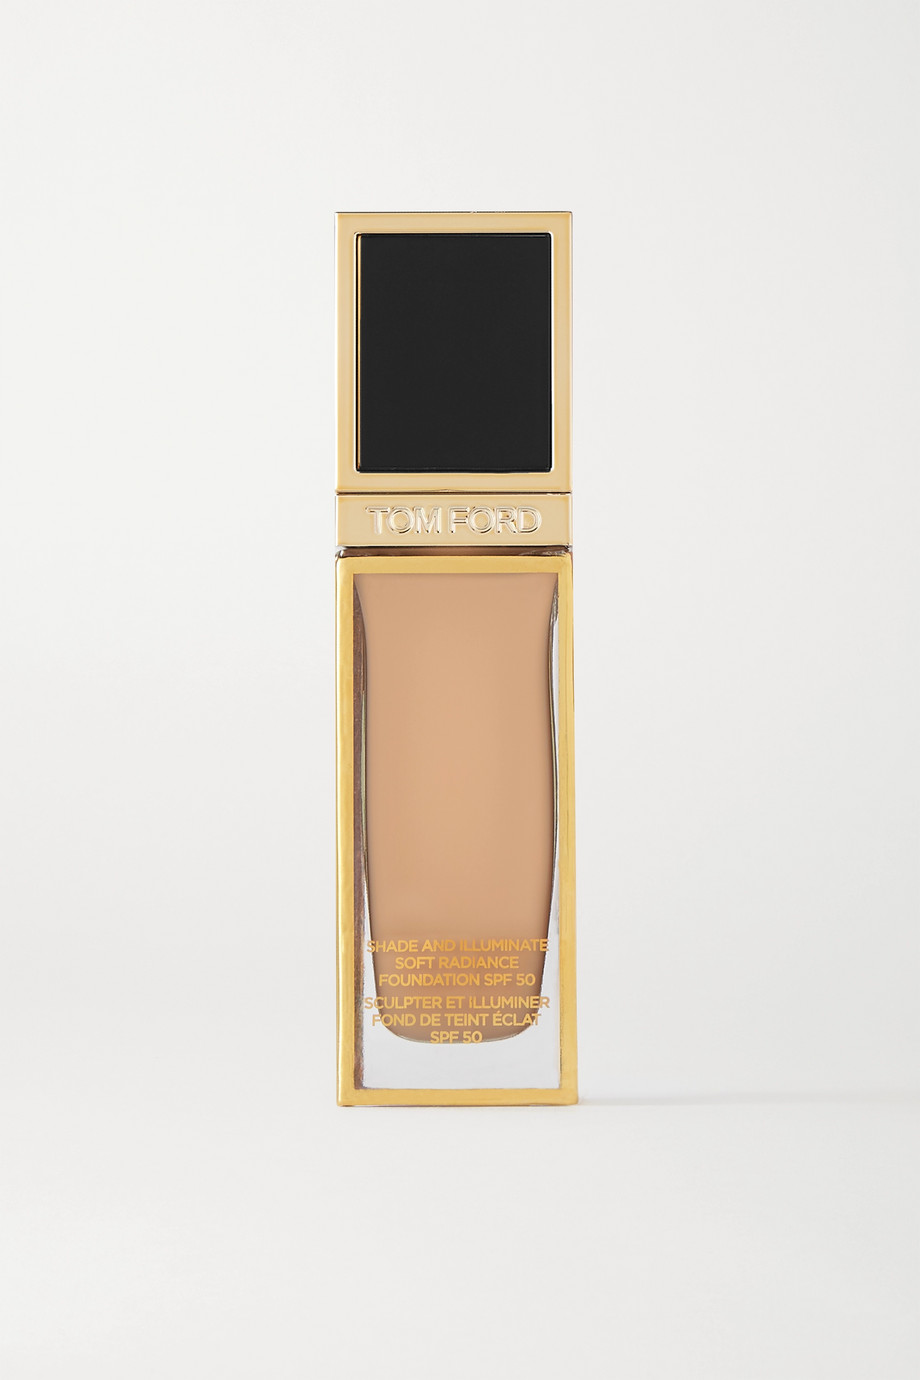 TOM FORD BEAUTY Shade and Illuminate Soft Radiance Foundation SPF50 - 5.5 Bisque, 30ml